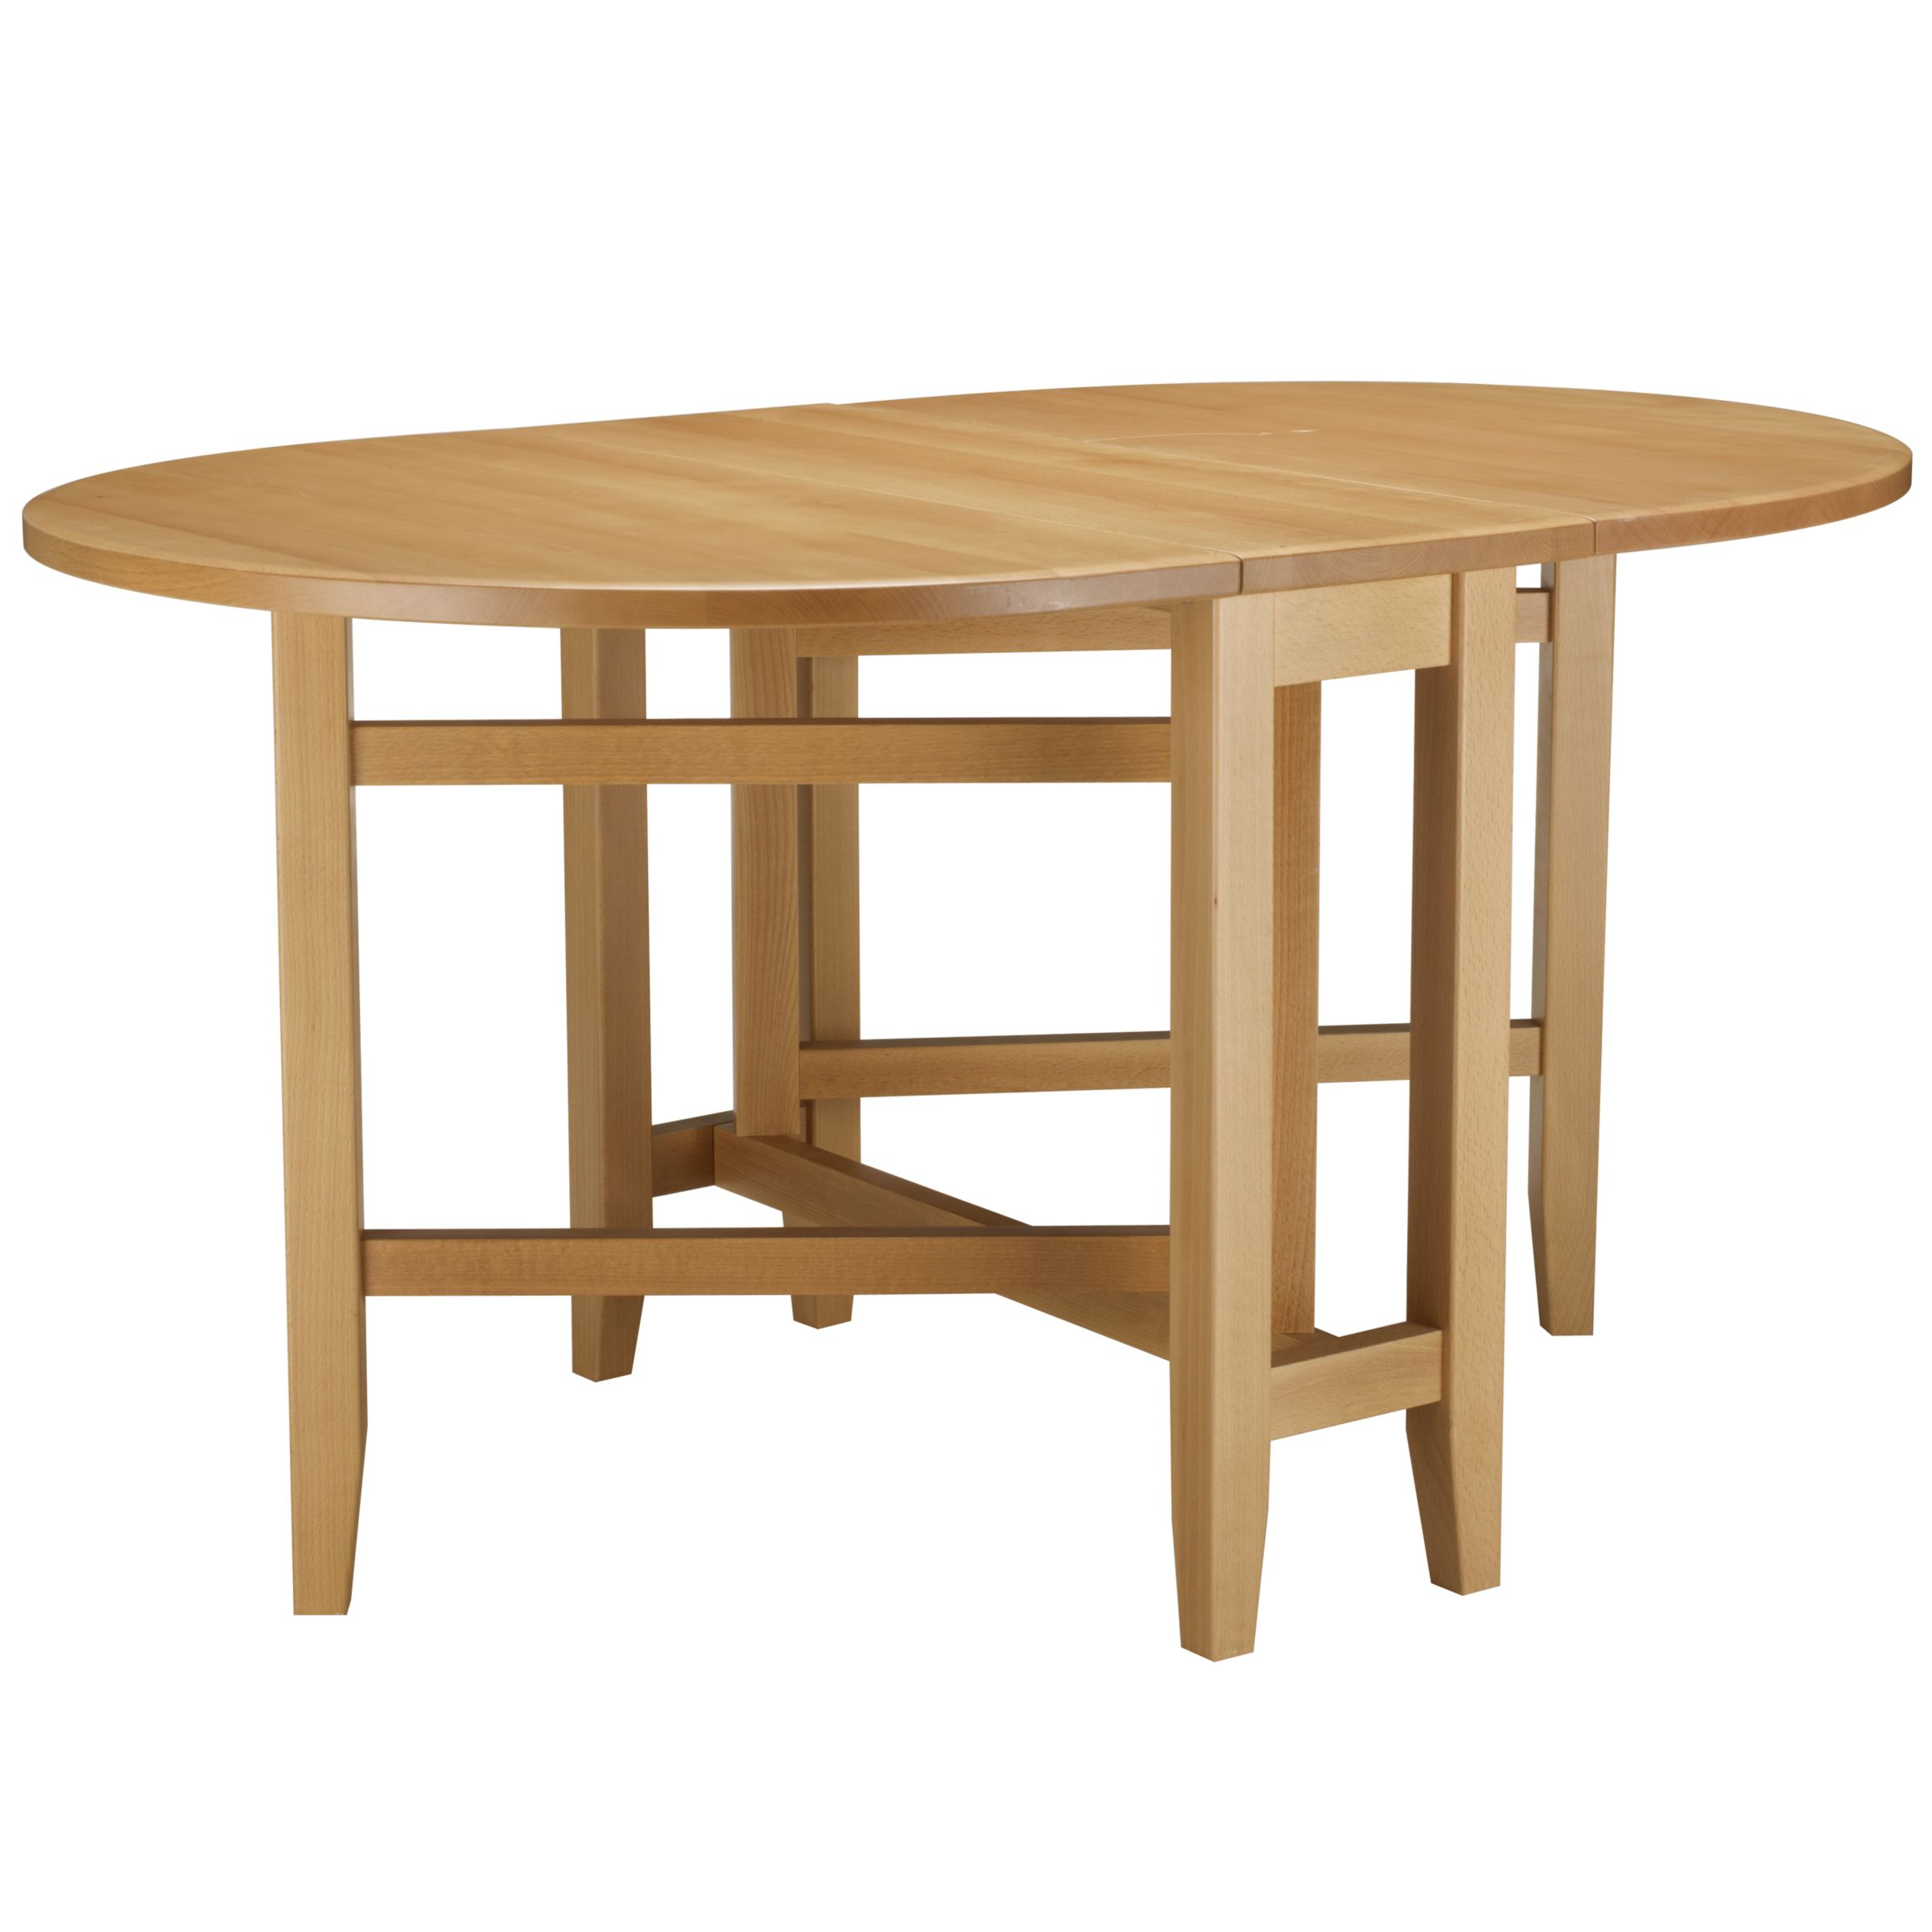 ordinary shaker kitchen table 2 231064114 - Shaker Kitchen Table